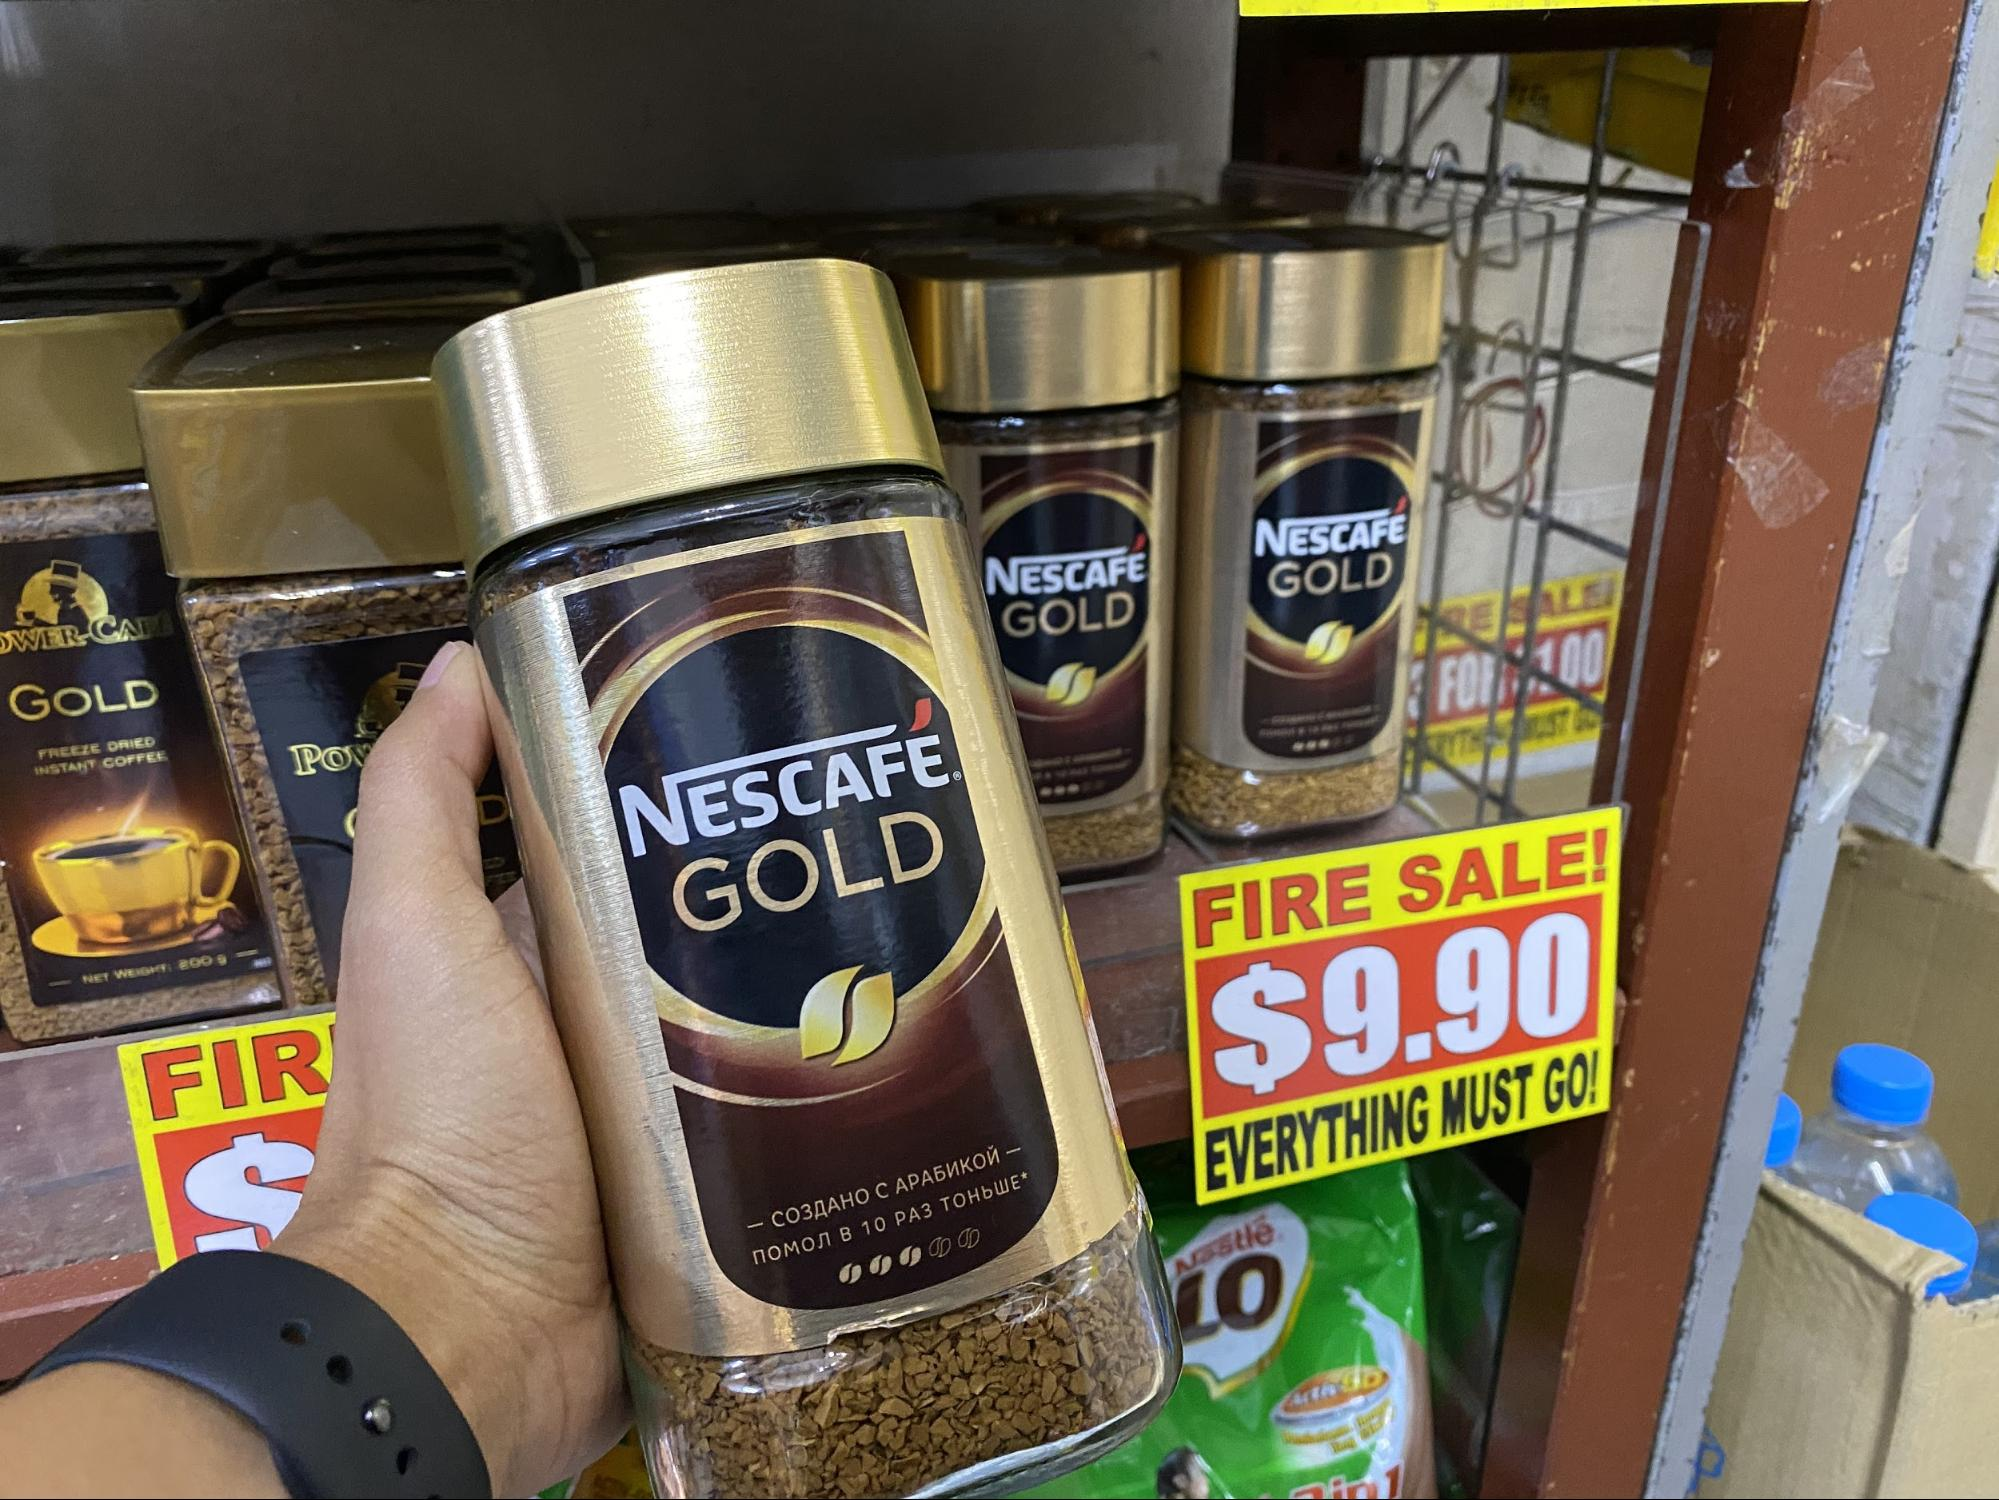 Nescafe Gold soluble coffee at the value dollar store in Singapore